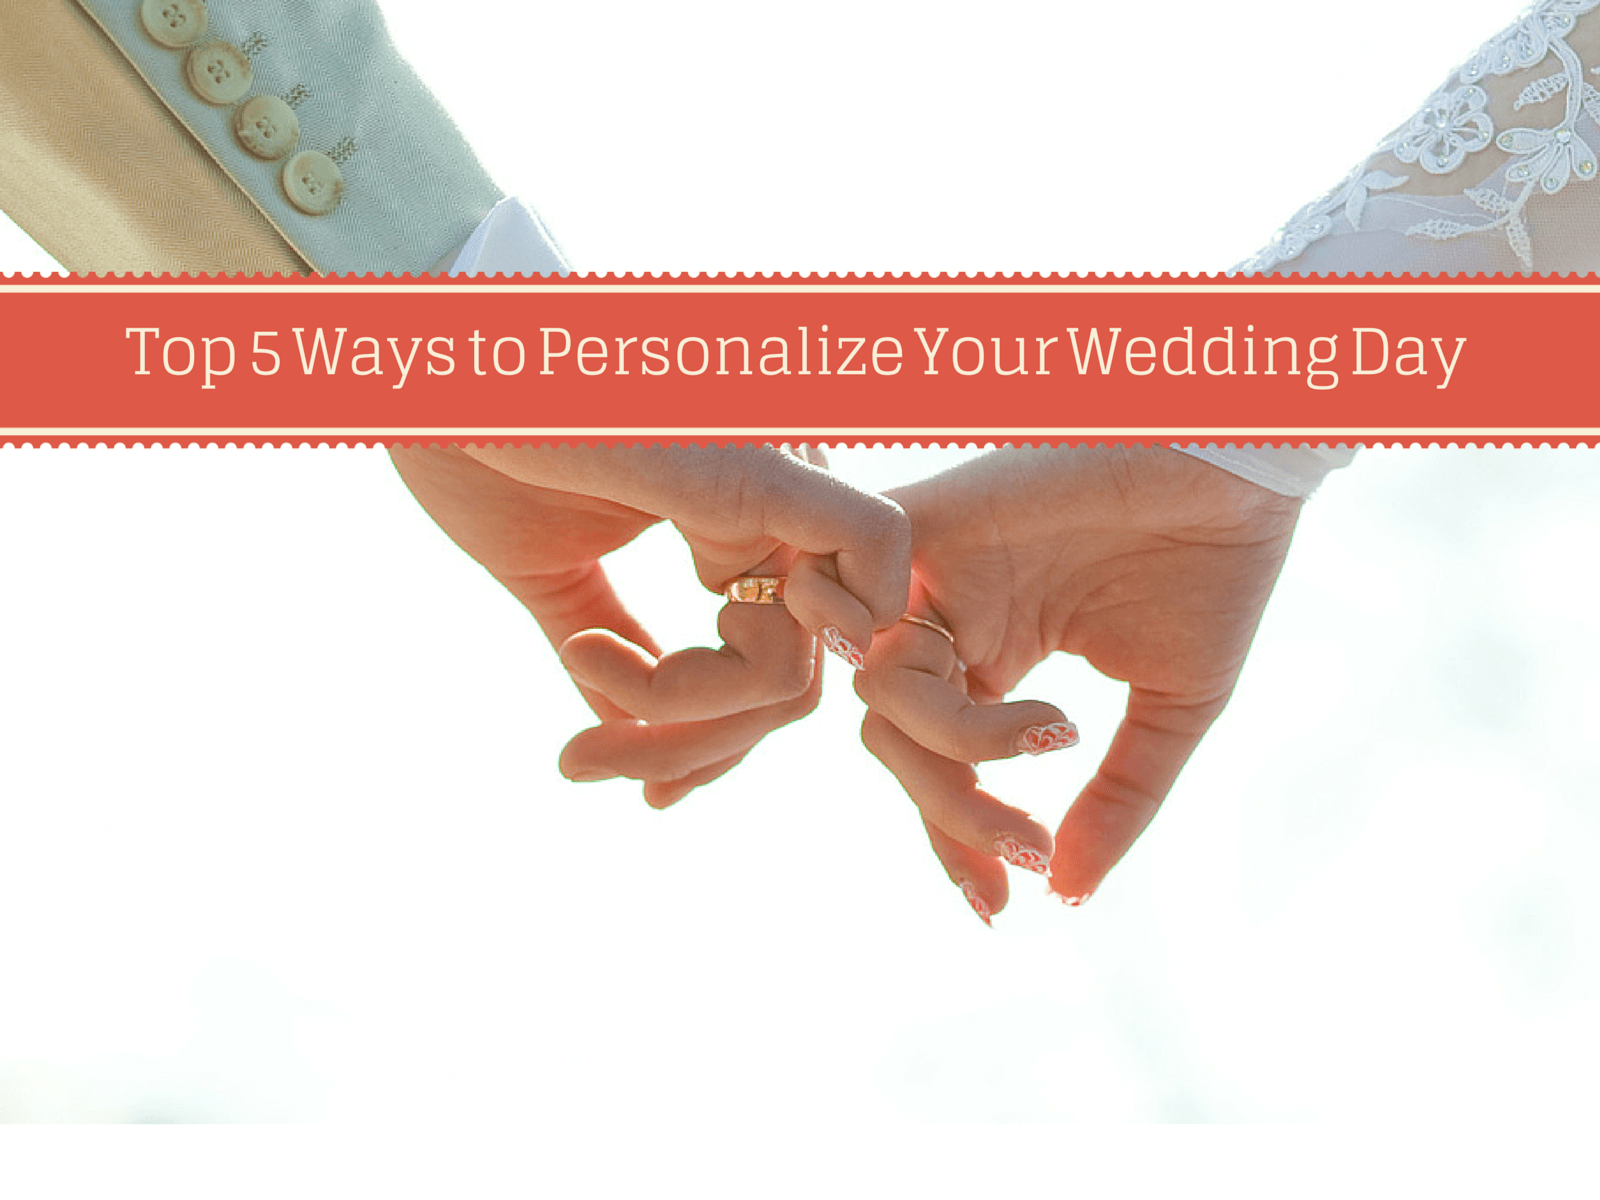 Top 12 Ways To Personalize Your Wedding Day - Augrav.com